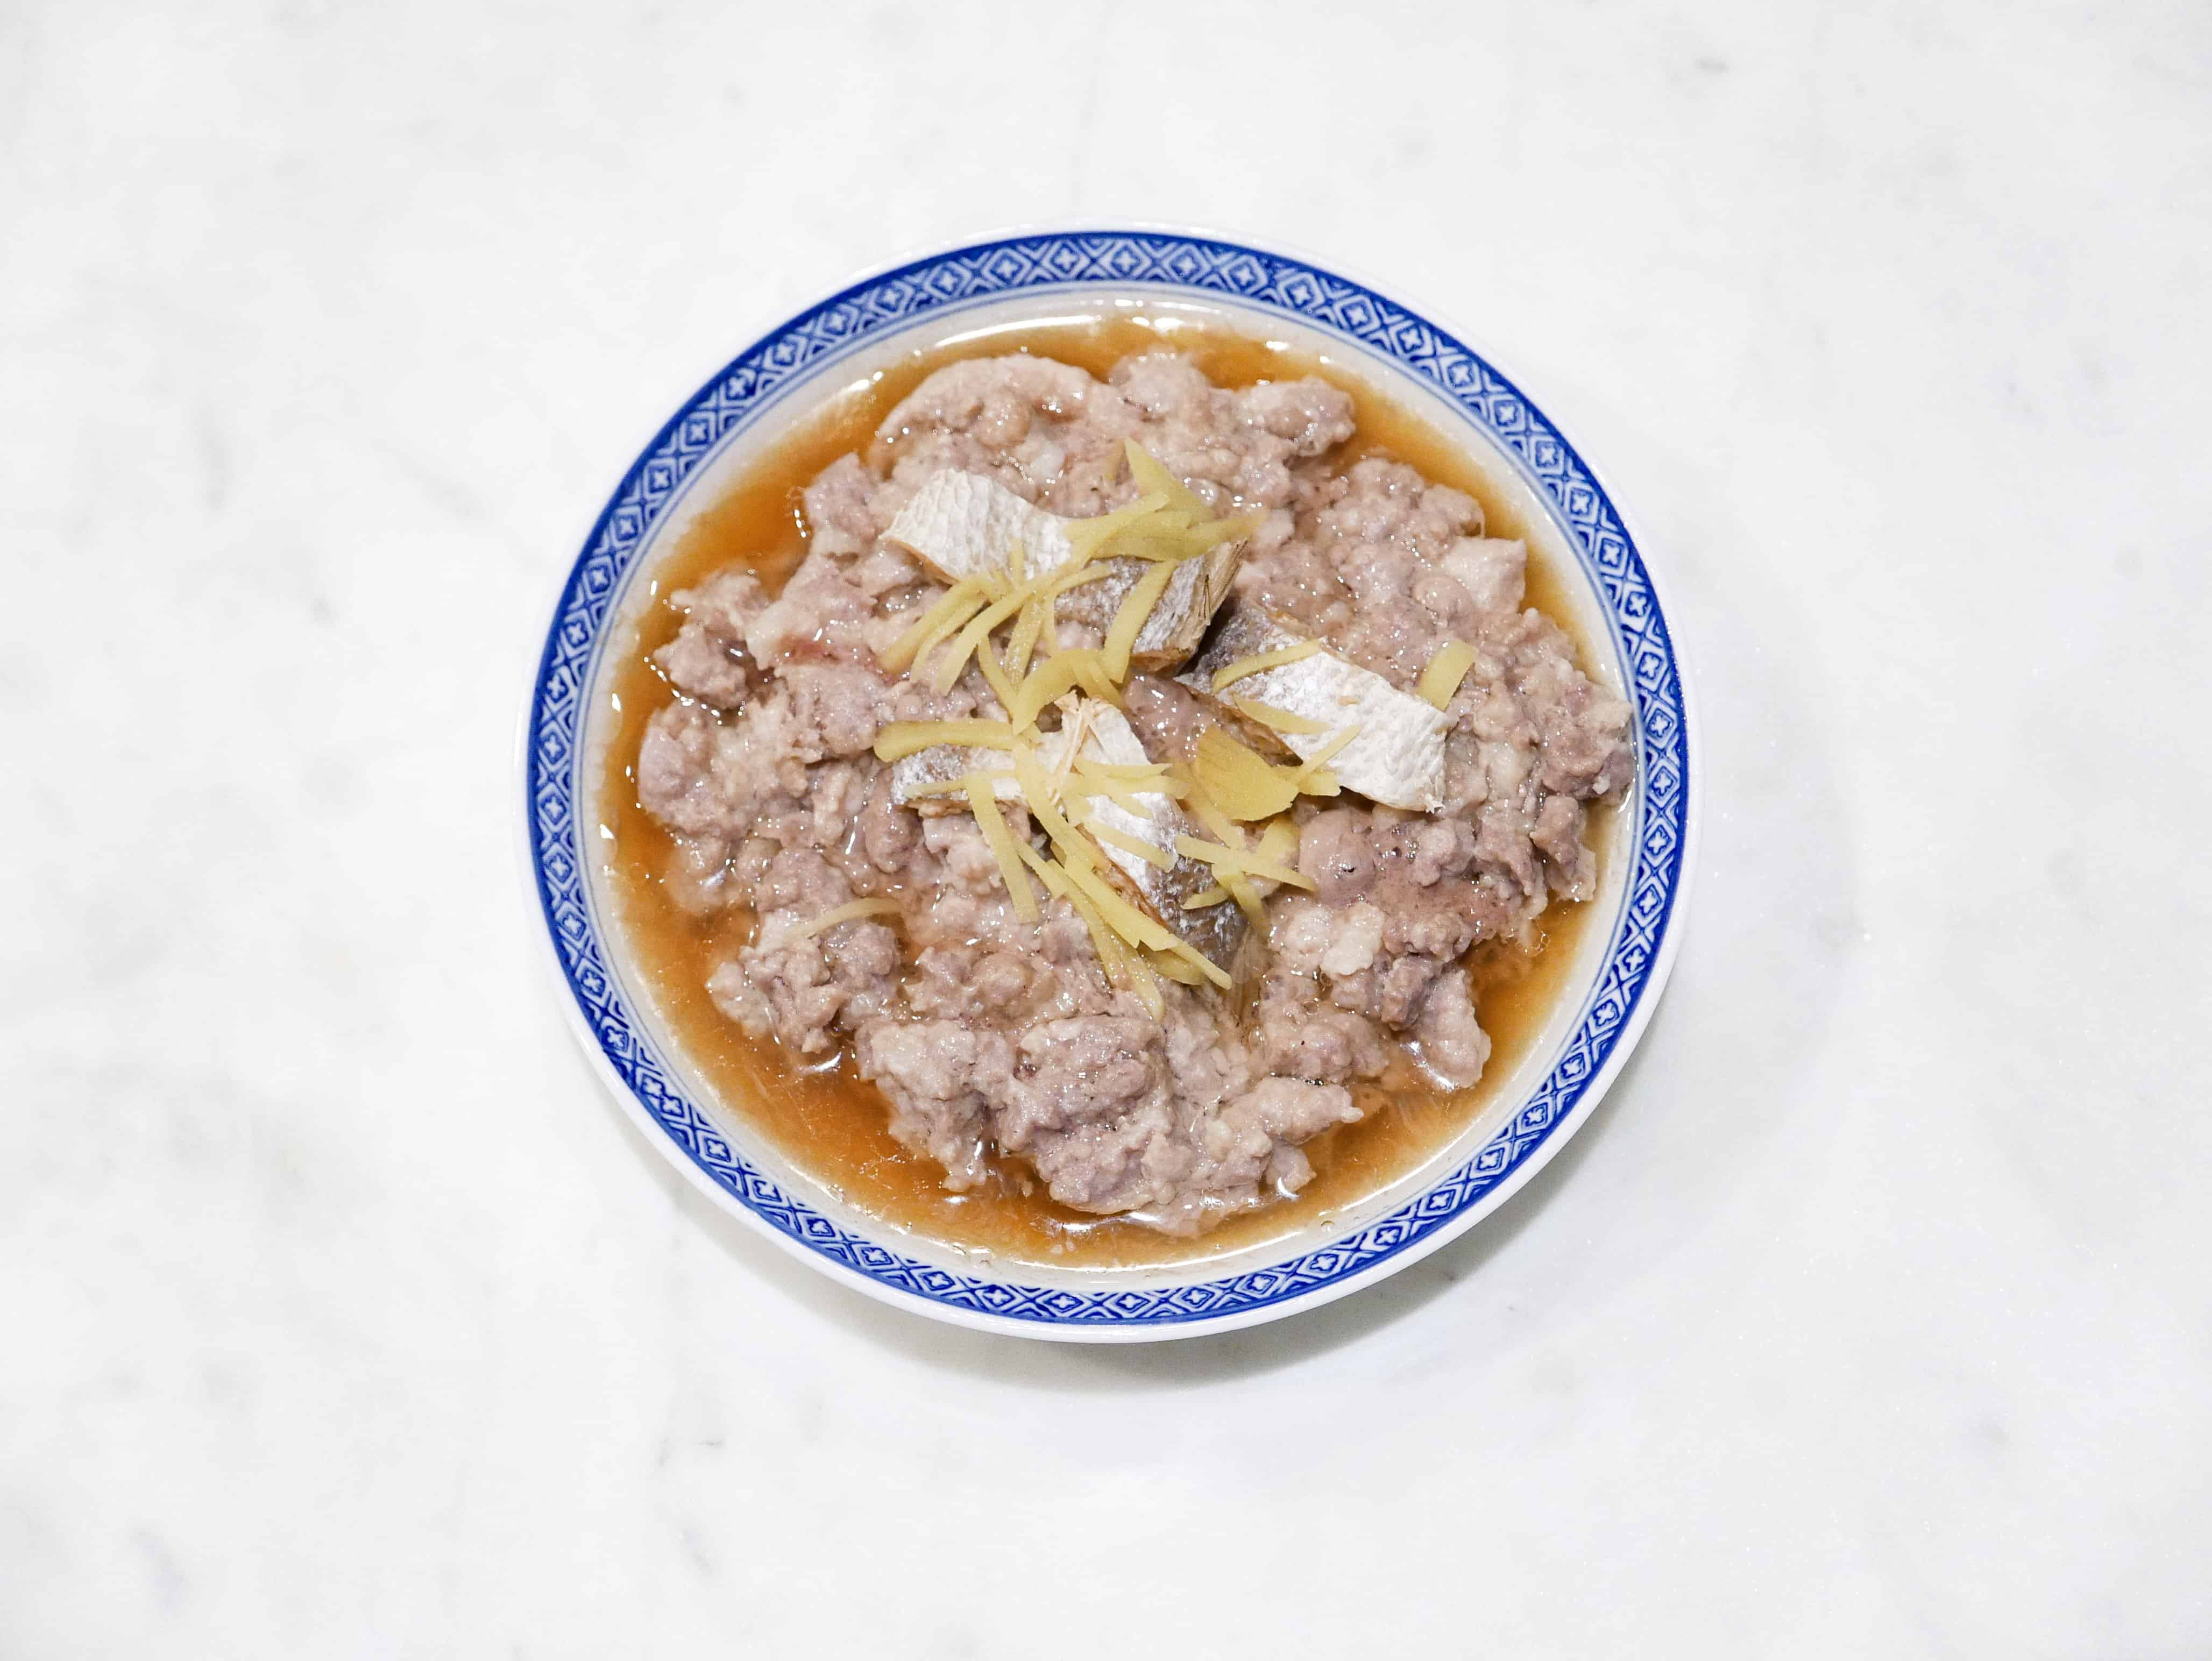 Steamed Minced Pork with Salted Fish 鹹魚蒸肉餅